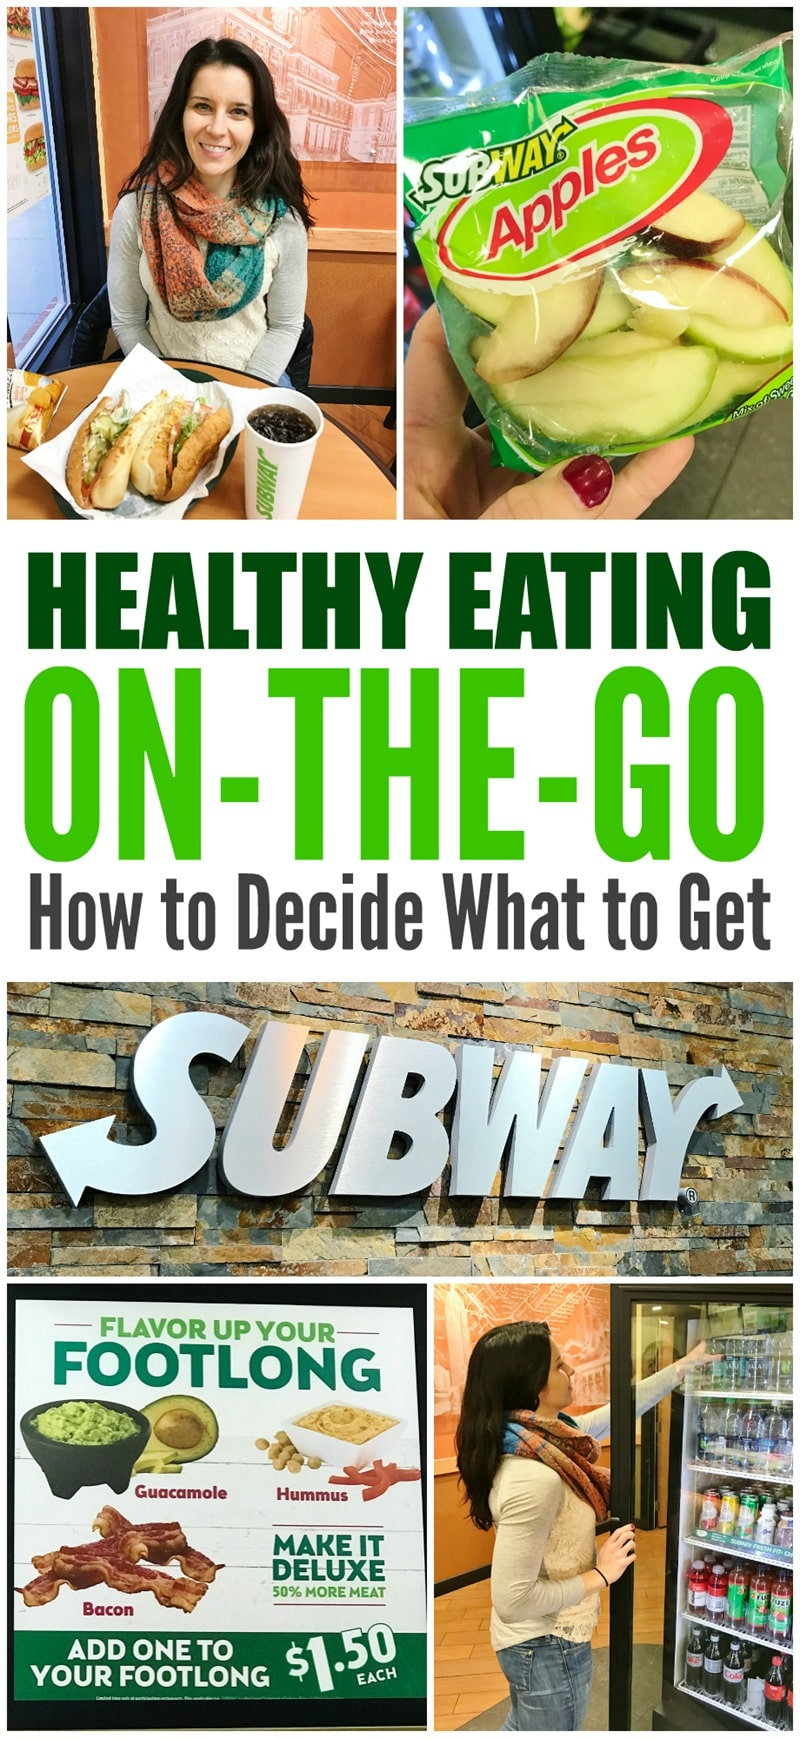 Healthy Eating On-the-Go_How to Decide